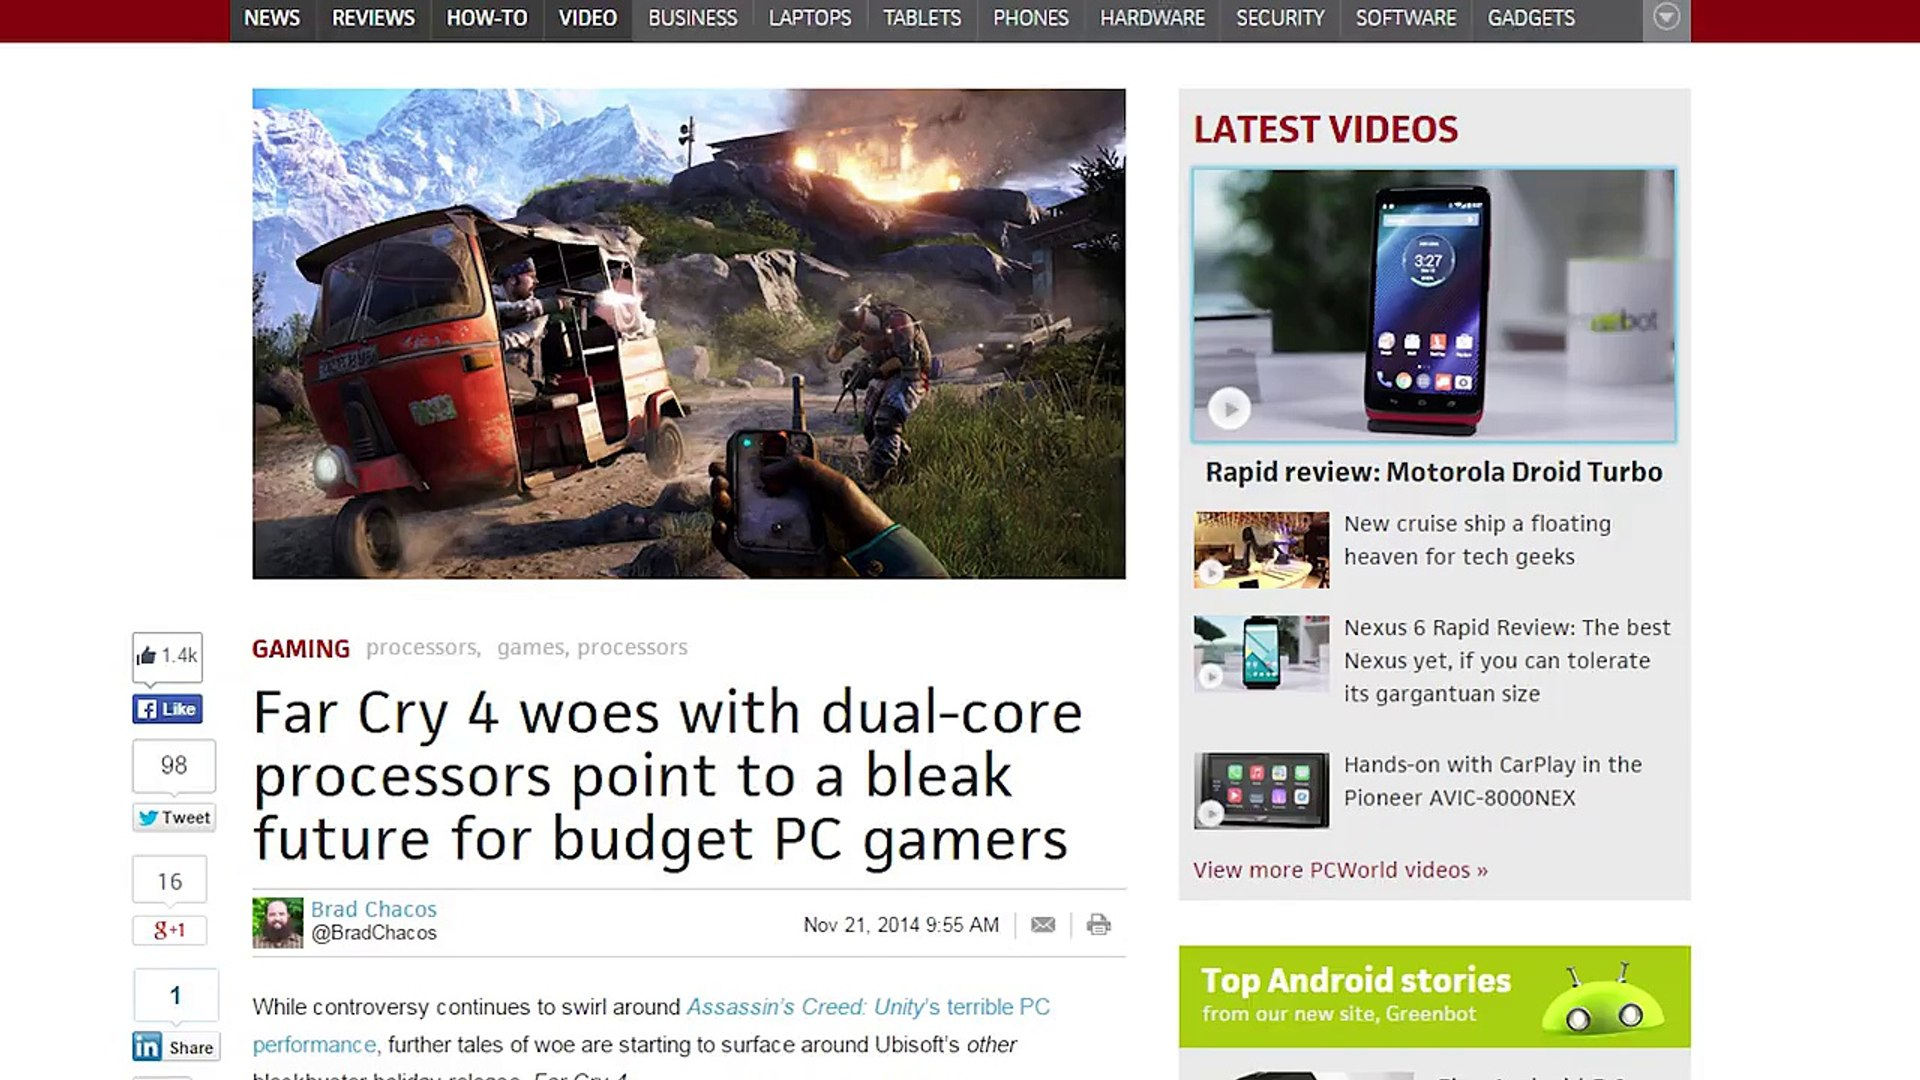 Far Cry 4 doesn't like dual-core CPUs, Amazon's free streaming, Blood Sport takes gamers&#